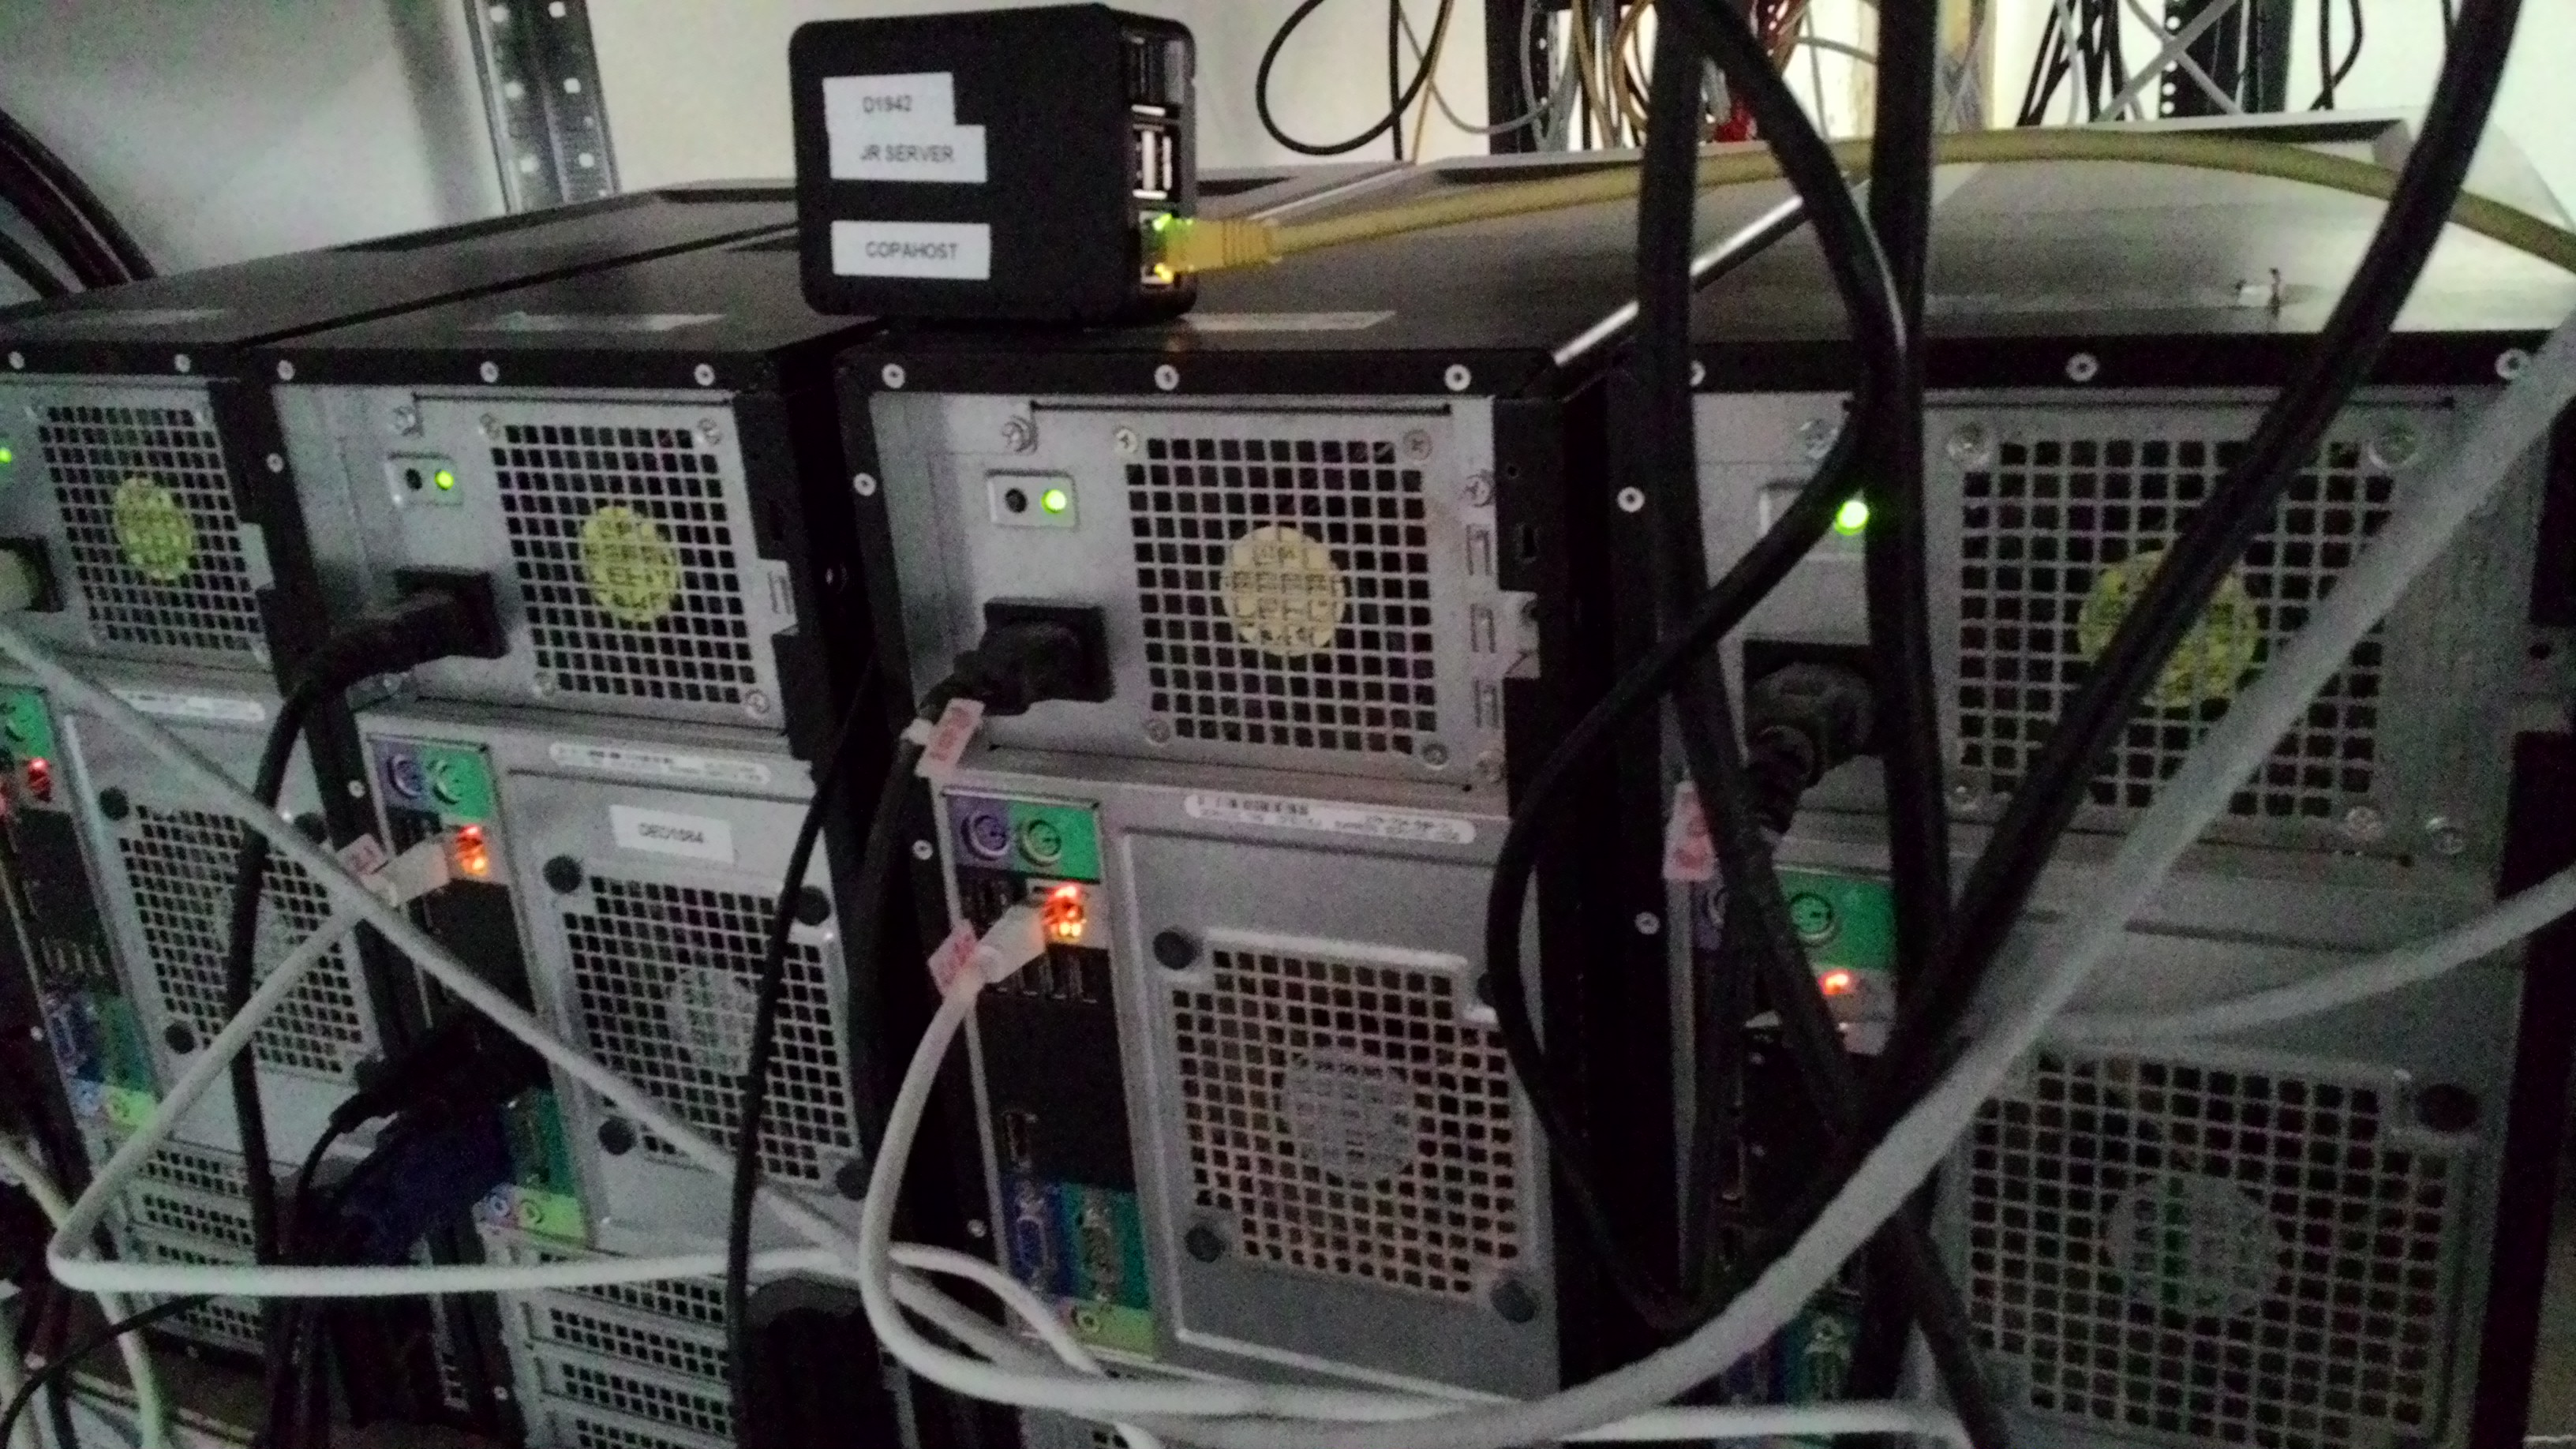 rasp dedicated server in datacenter img2